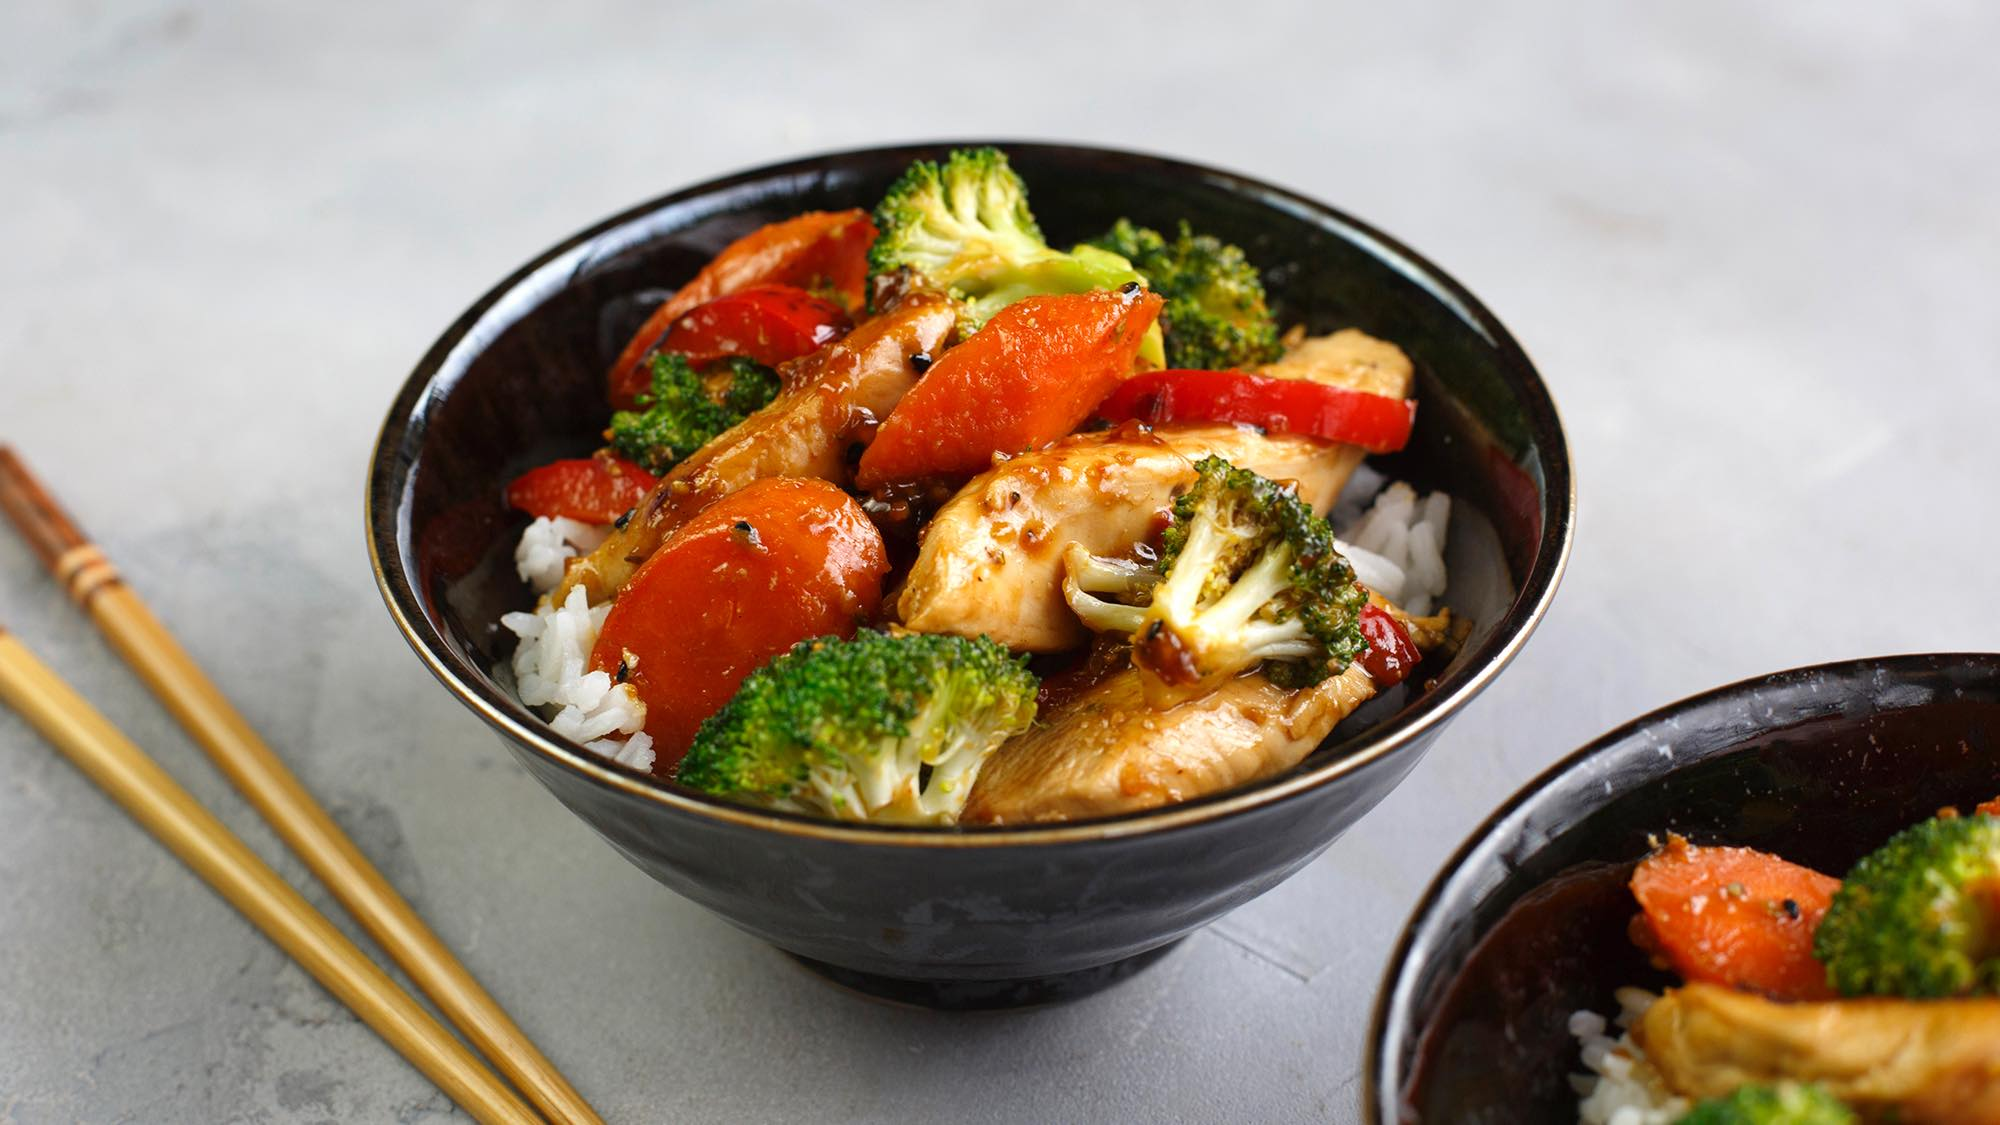 chicken_and_vegetable_stir_fry_recipes_2000x1125.jpg